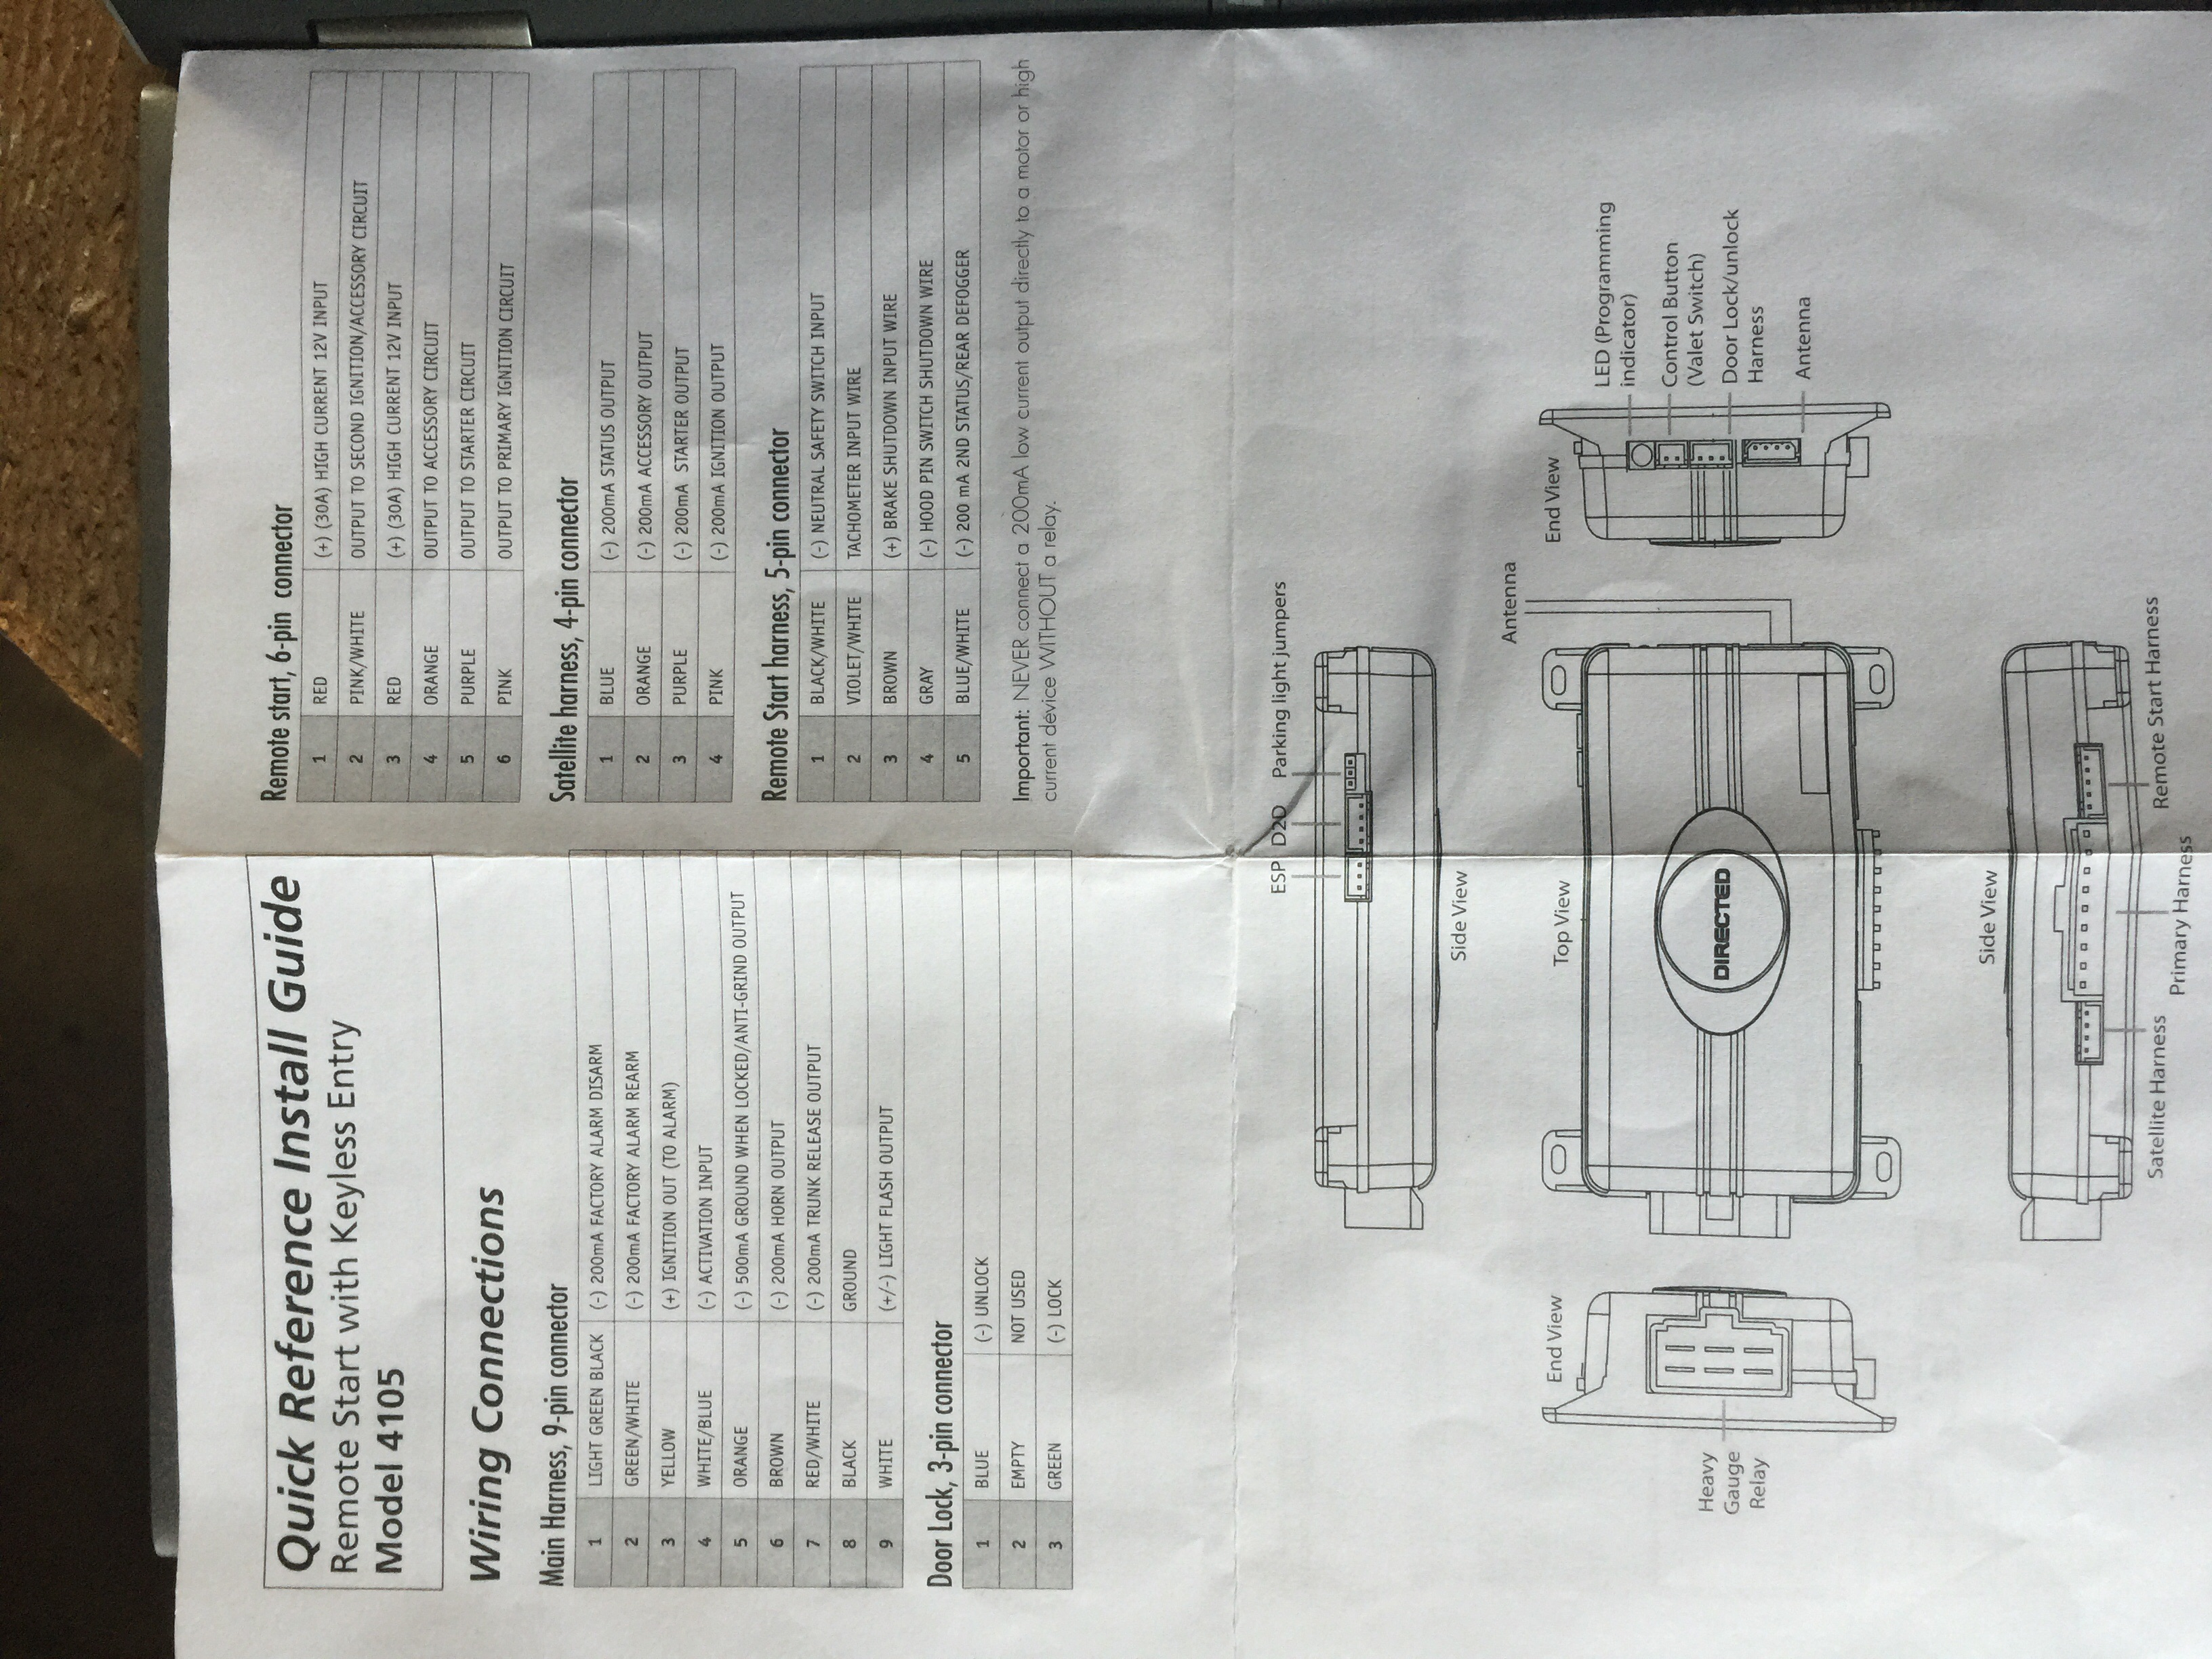 Viper 4105v Remote Start Wiring Diagram Wiring Schematics And